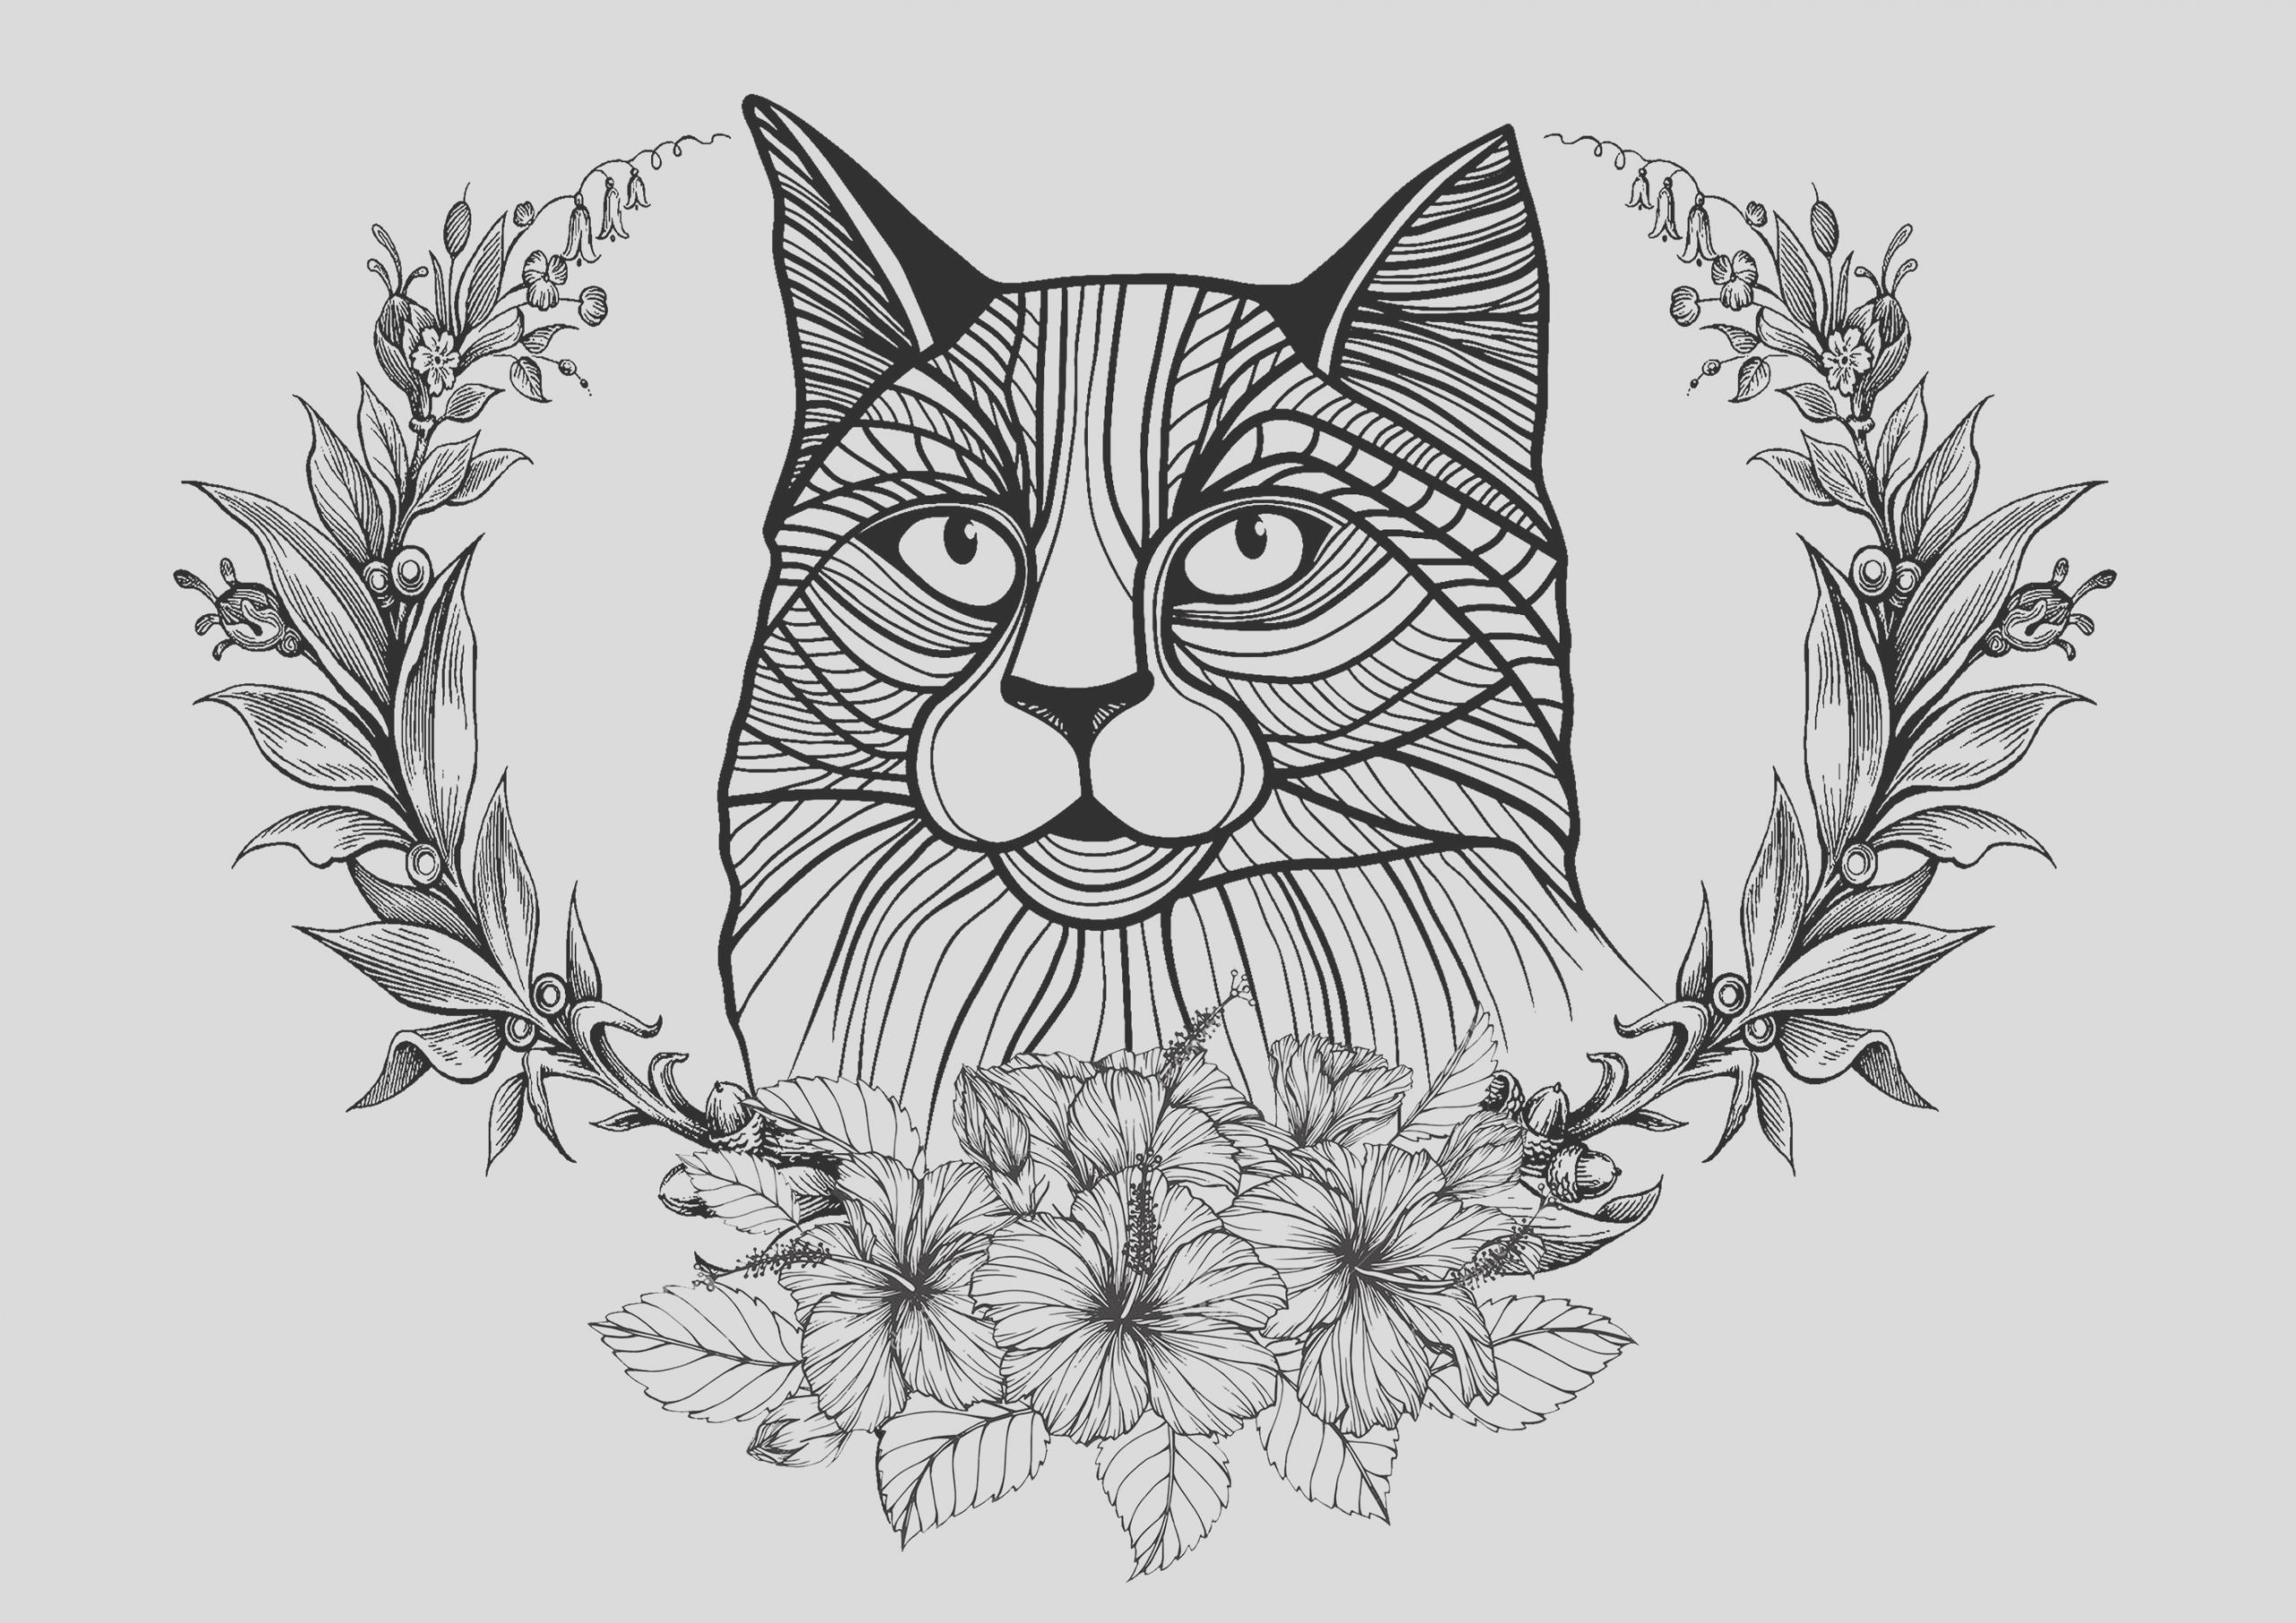 image=cats coloring cat and laurel wreath 1